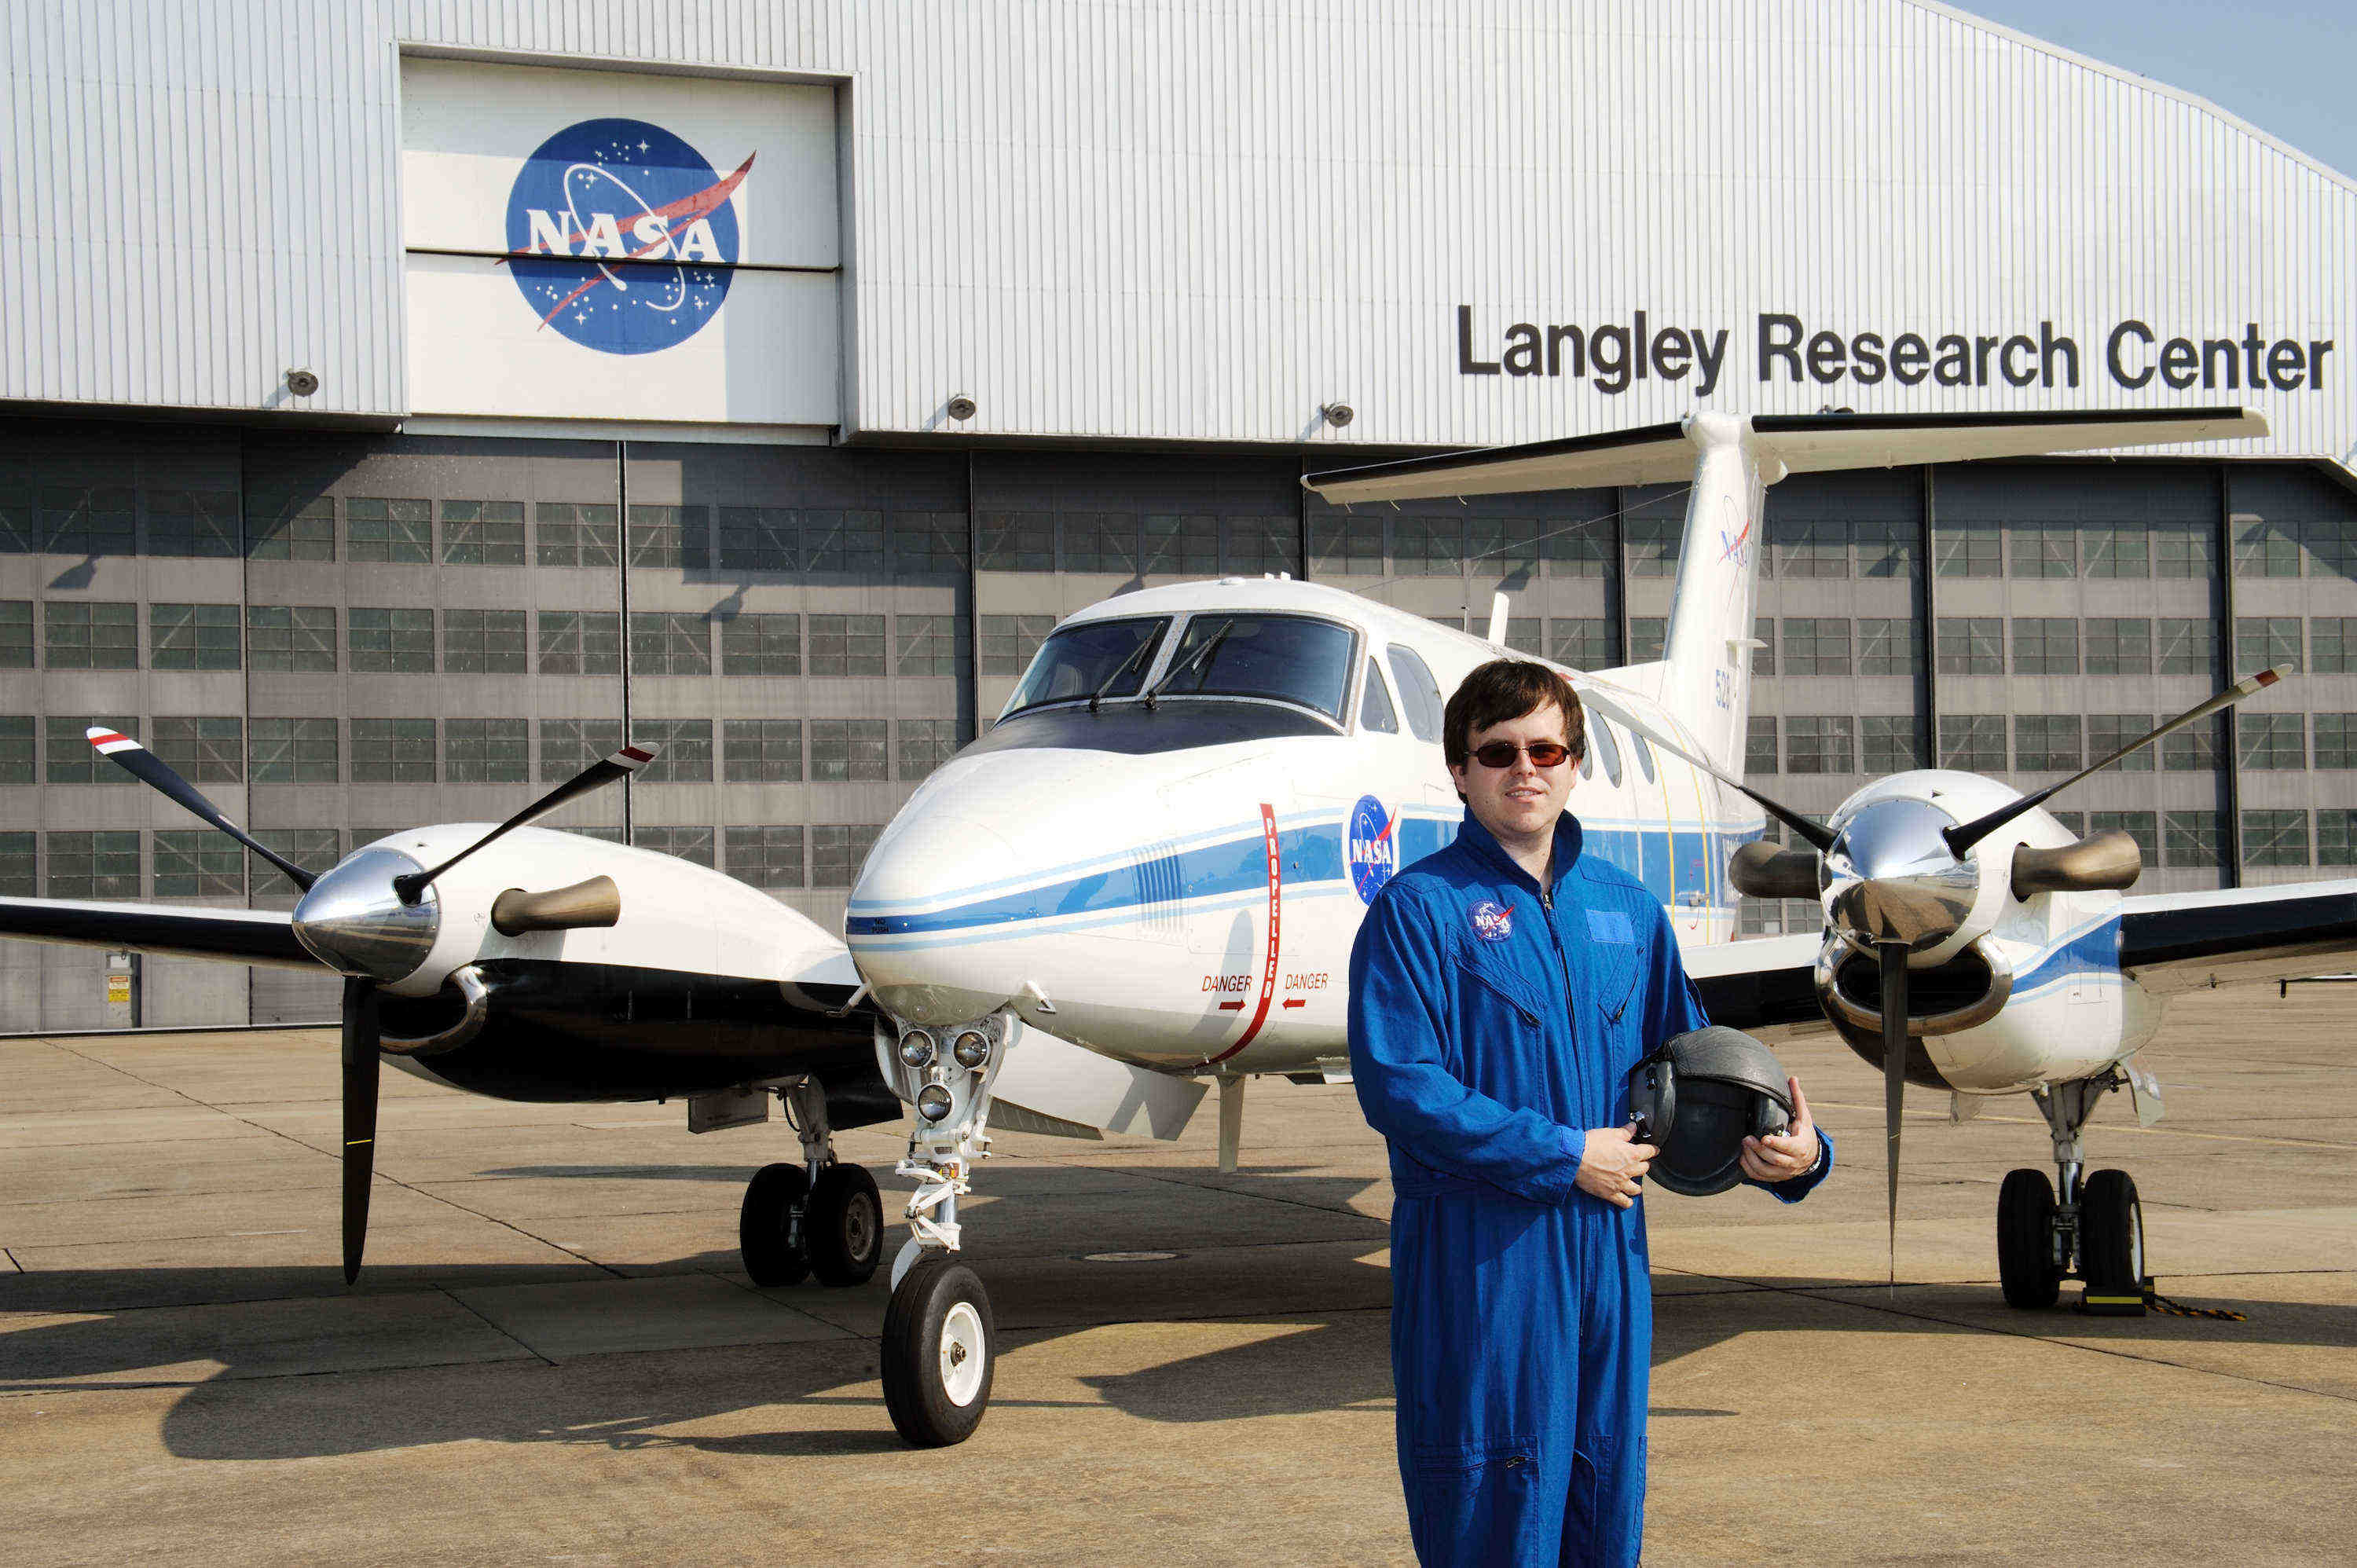 Stephen Pace in front of a NASA aircraft and hangar